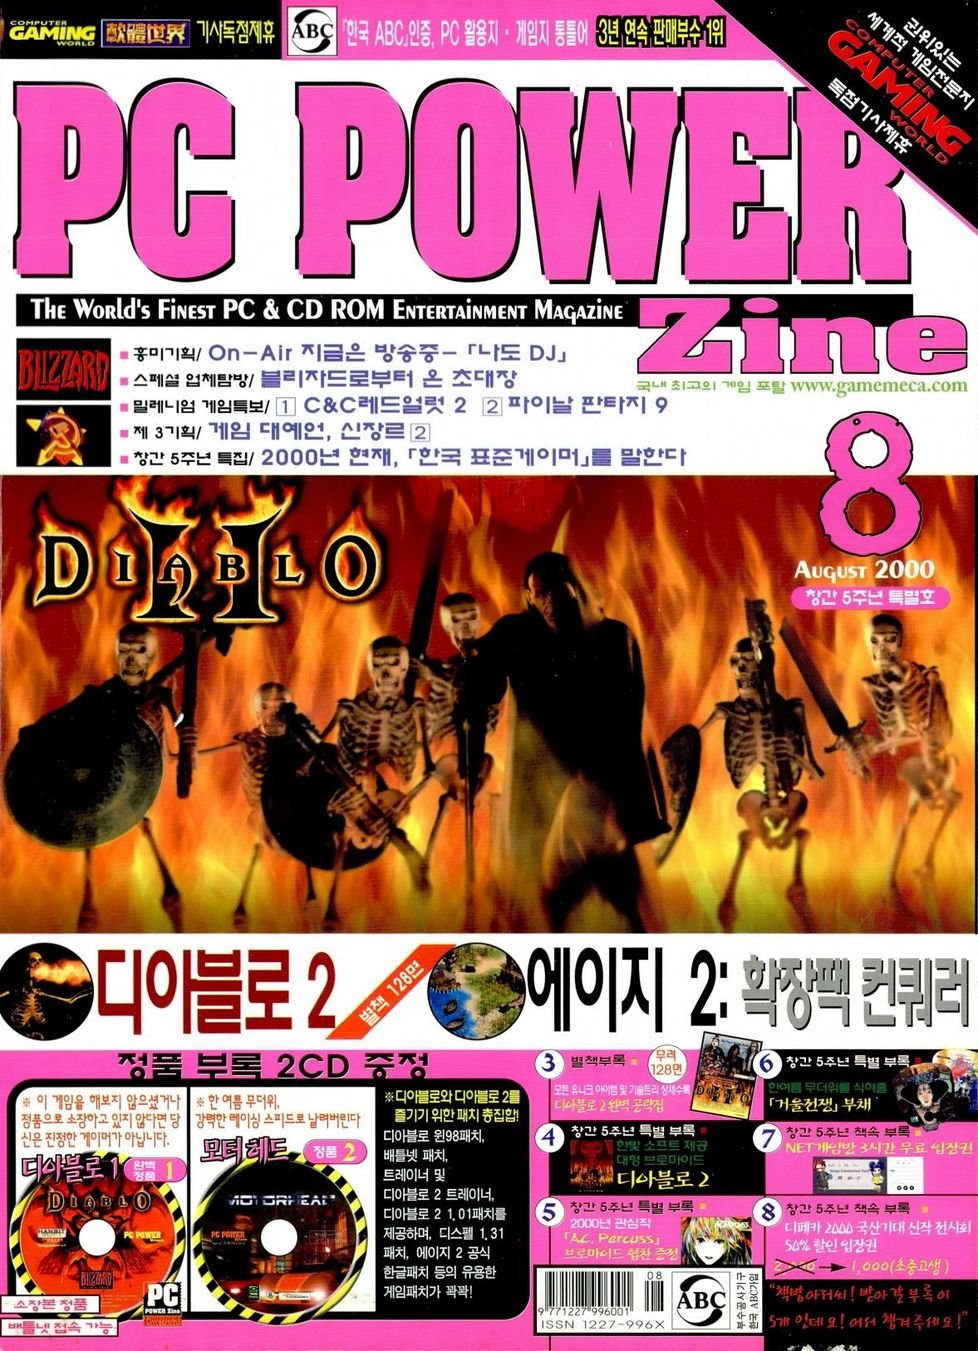 PC Power Zine Issue 61 (August 2000)